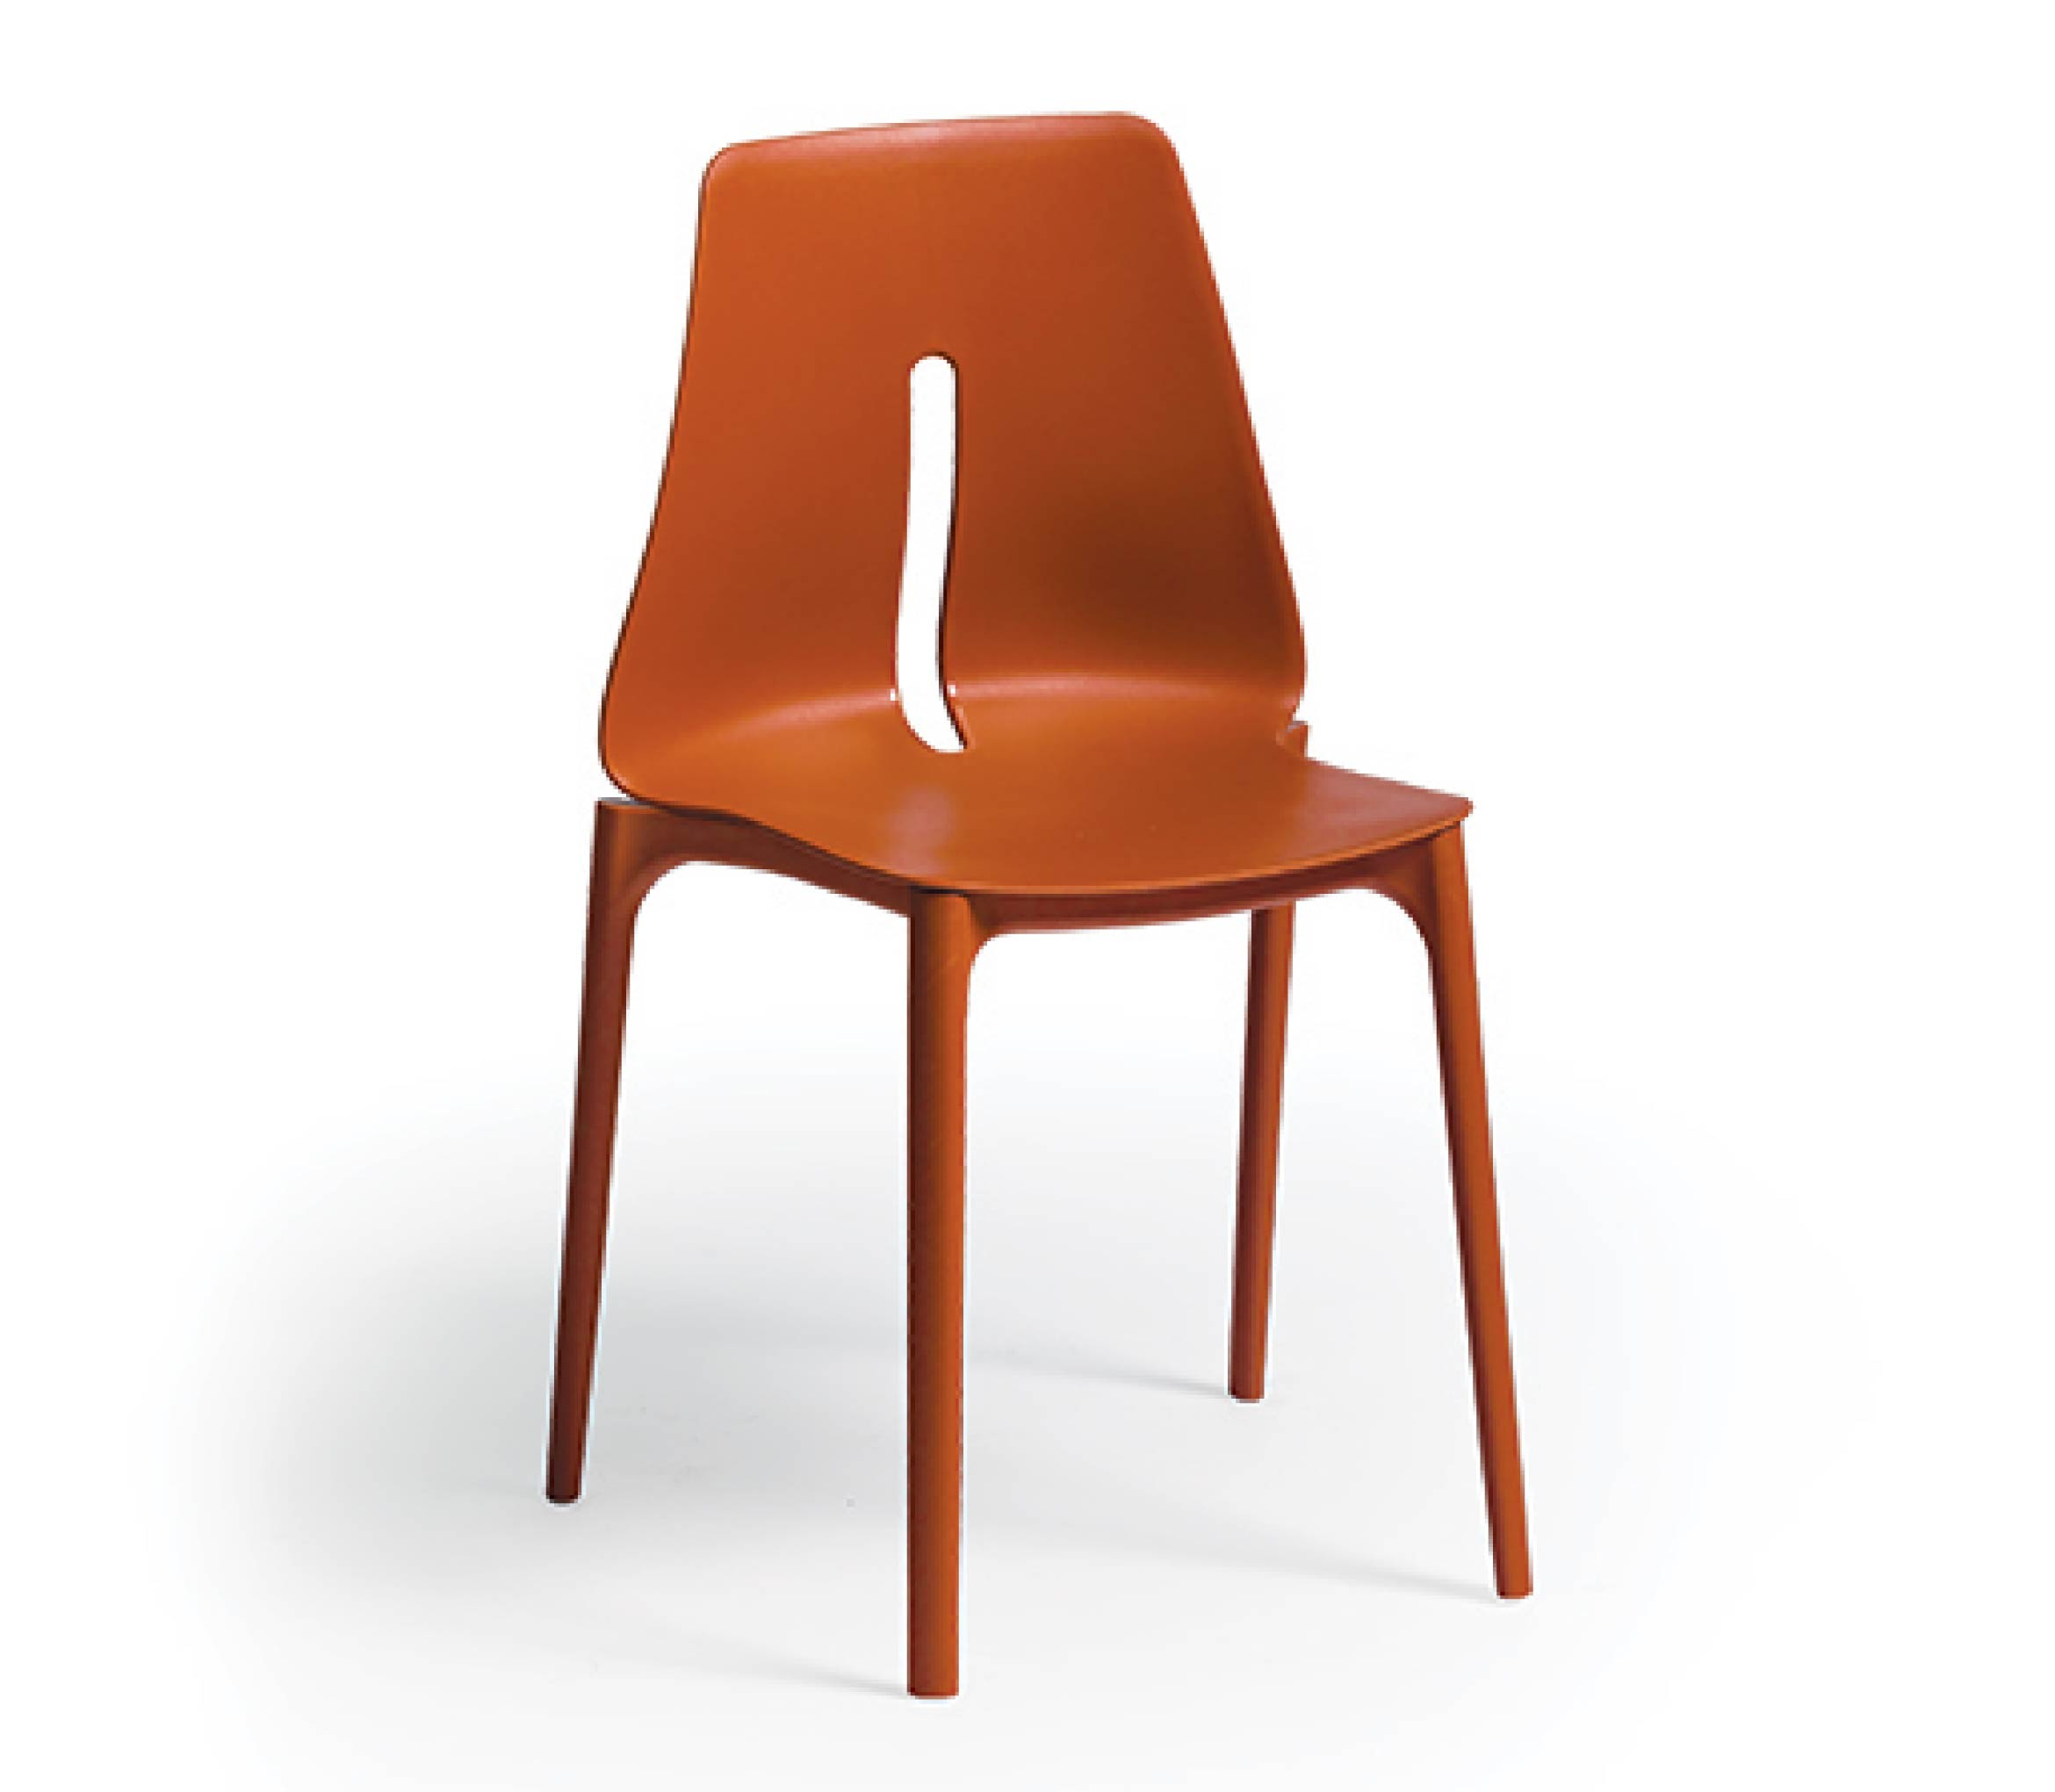 3_TENSAI_FURNITURE_OBLONG__plastic_chair_red_color_in_white_background_303_005